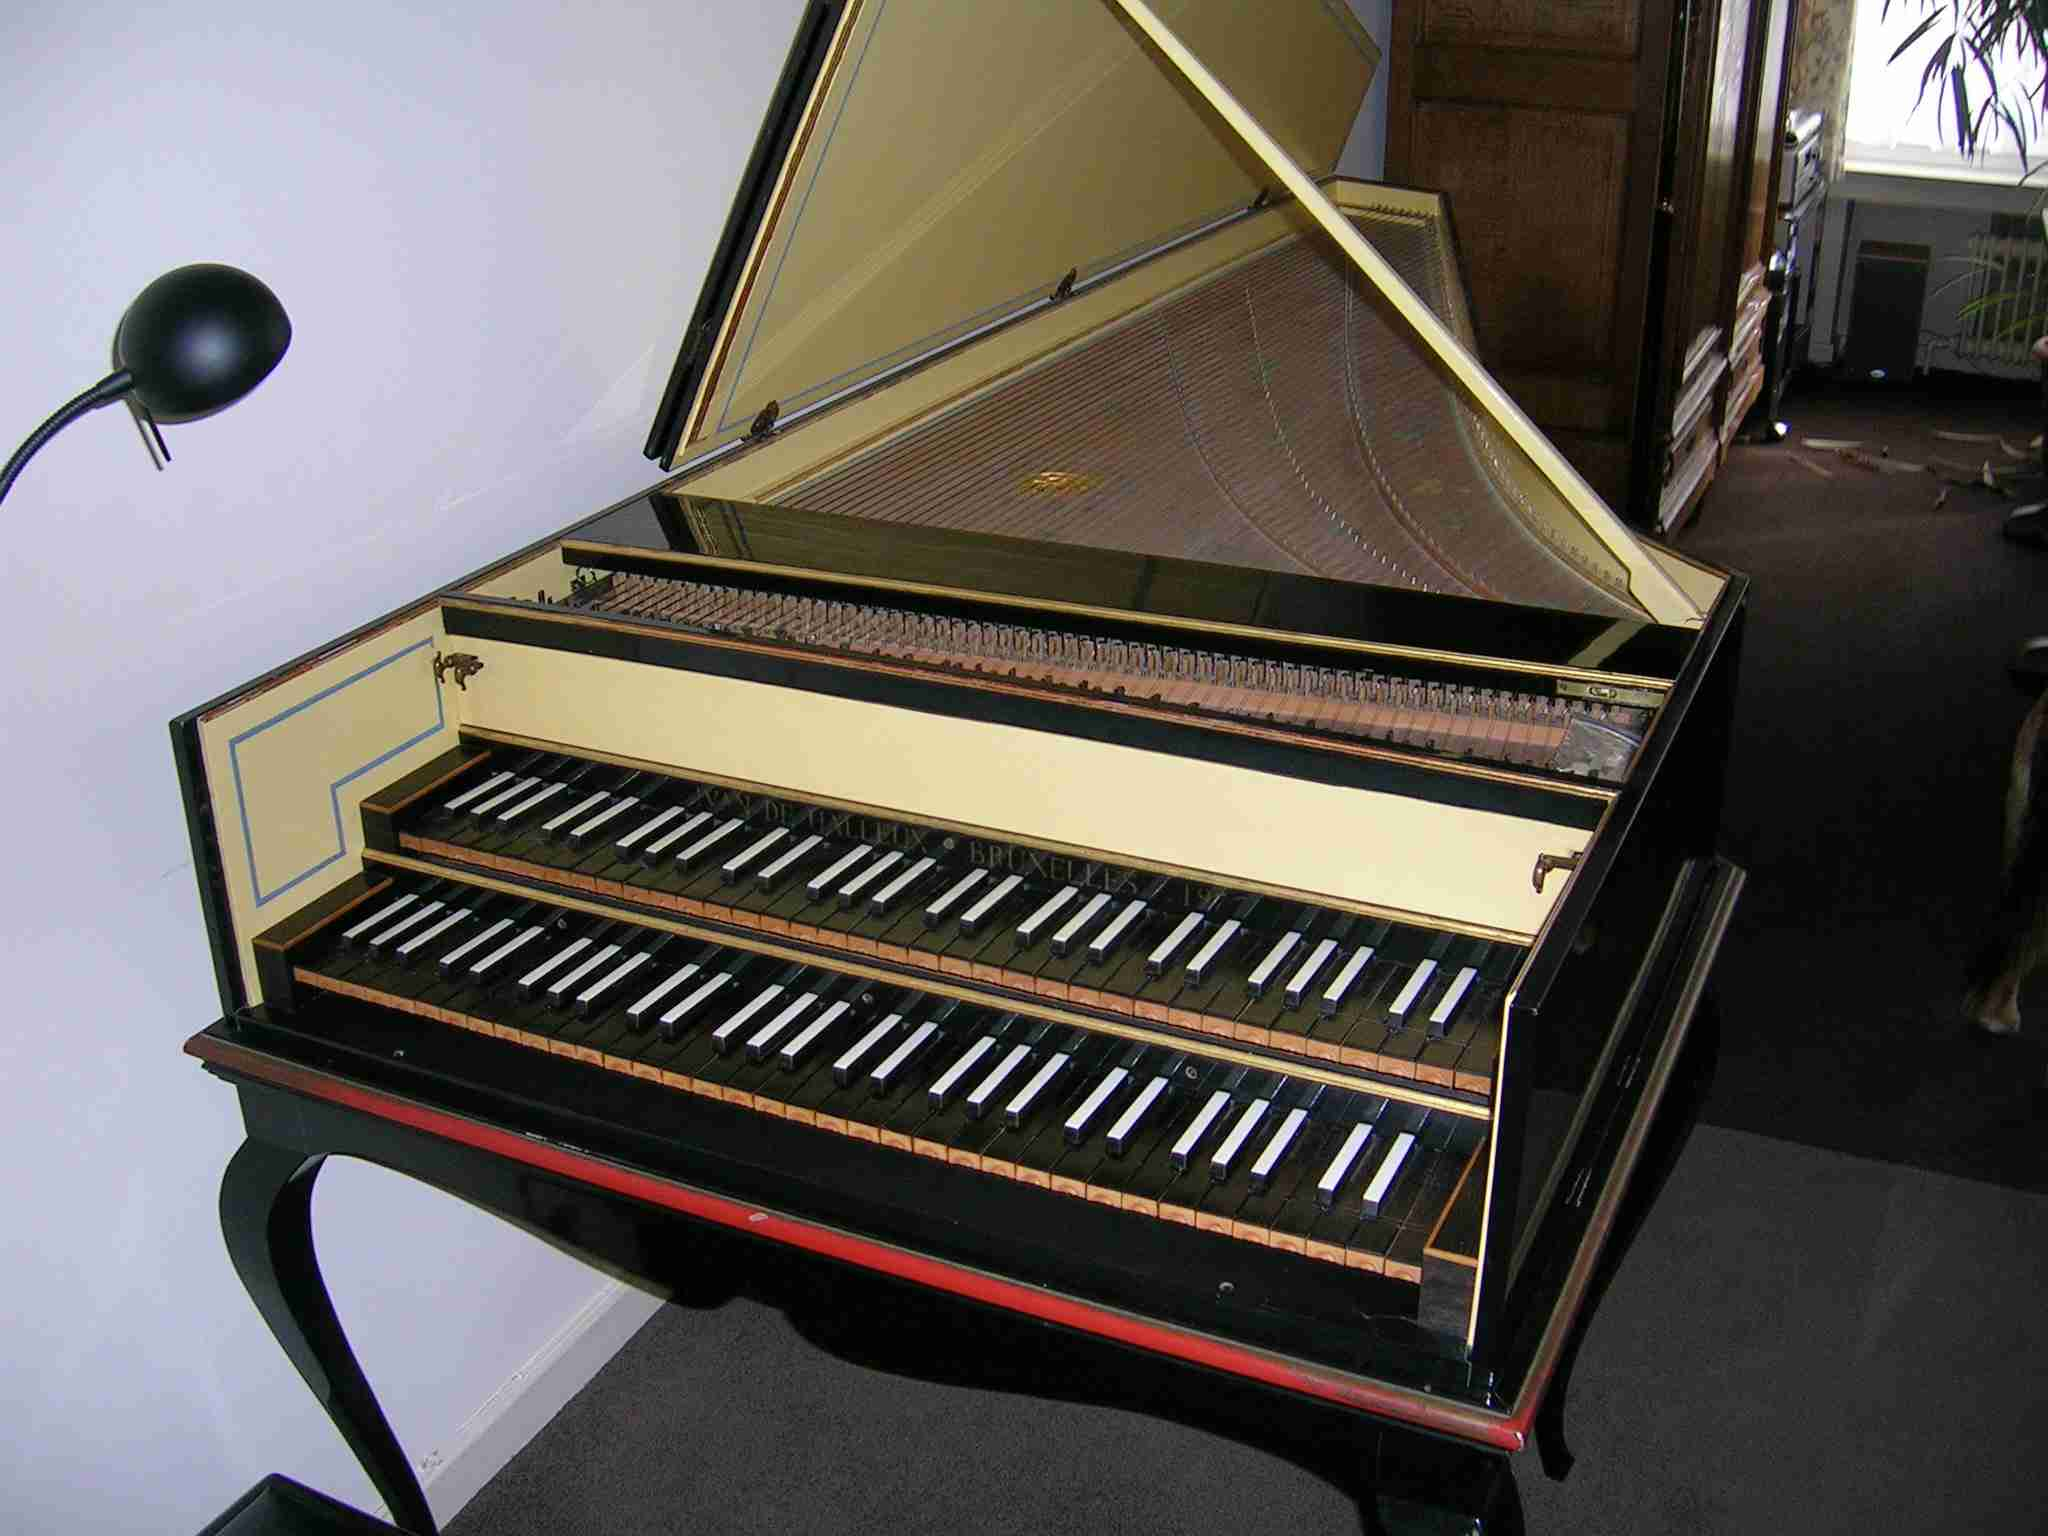 Belgium: Harpsichords, spinets, virginals, clavichords and ...